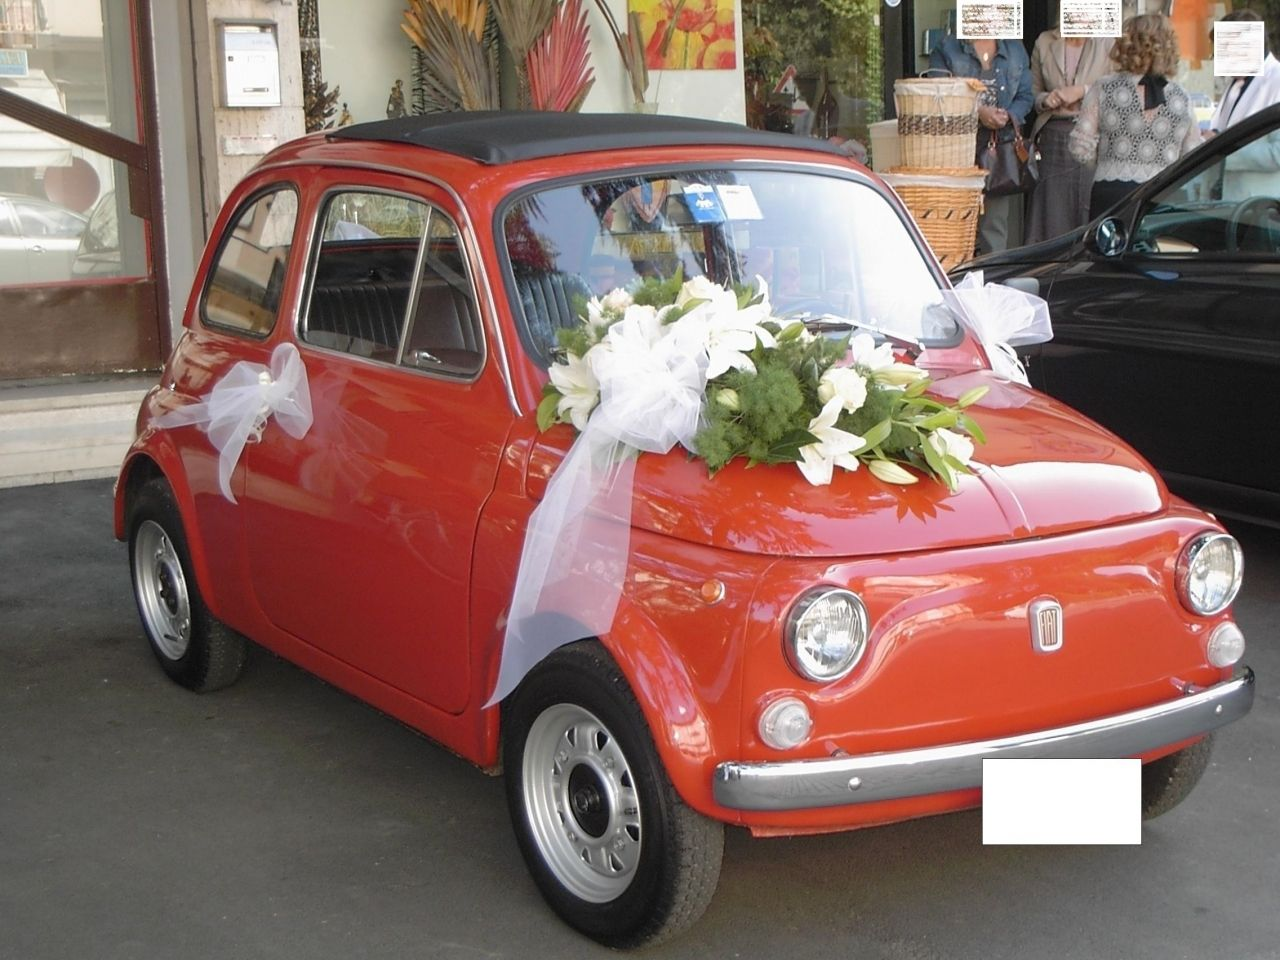 fiat 500 location mariage fiat 500 pinterest location mariage location et d chirer. Black Bedroom Furniture Sets. Home Design Ideas